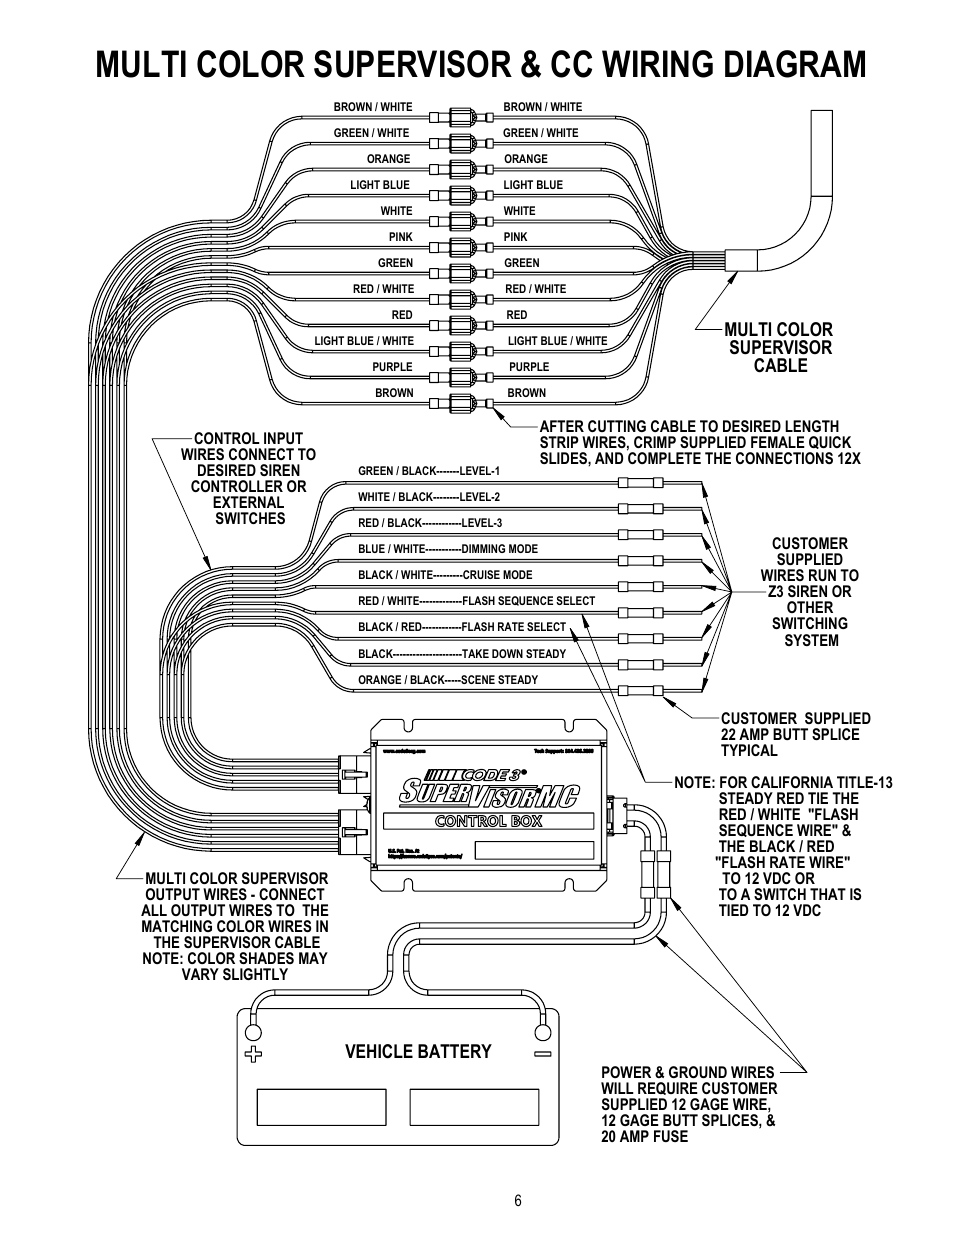 code 3 mc supervisor tahoe page6 code 3 siren wiring diagram car alarm circuit diagram \u2022 wiring  at creativeand.co